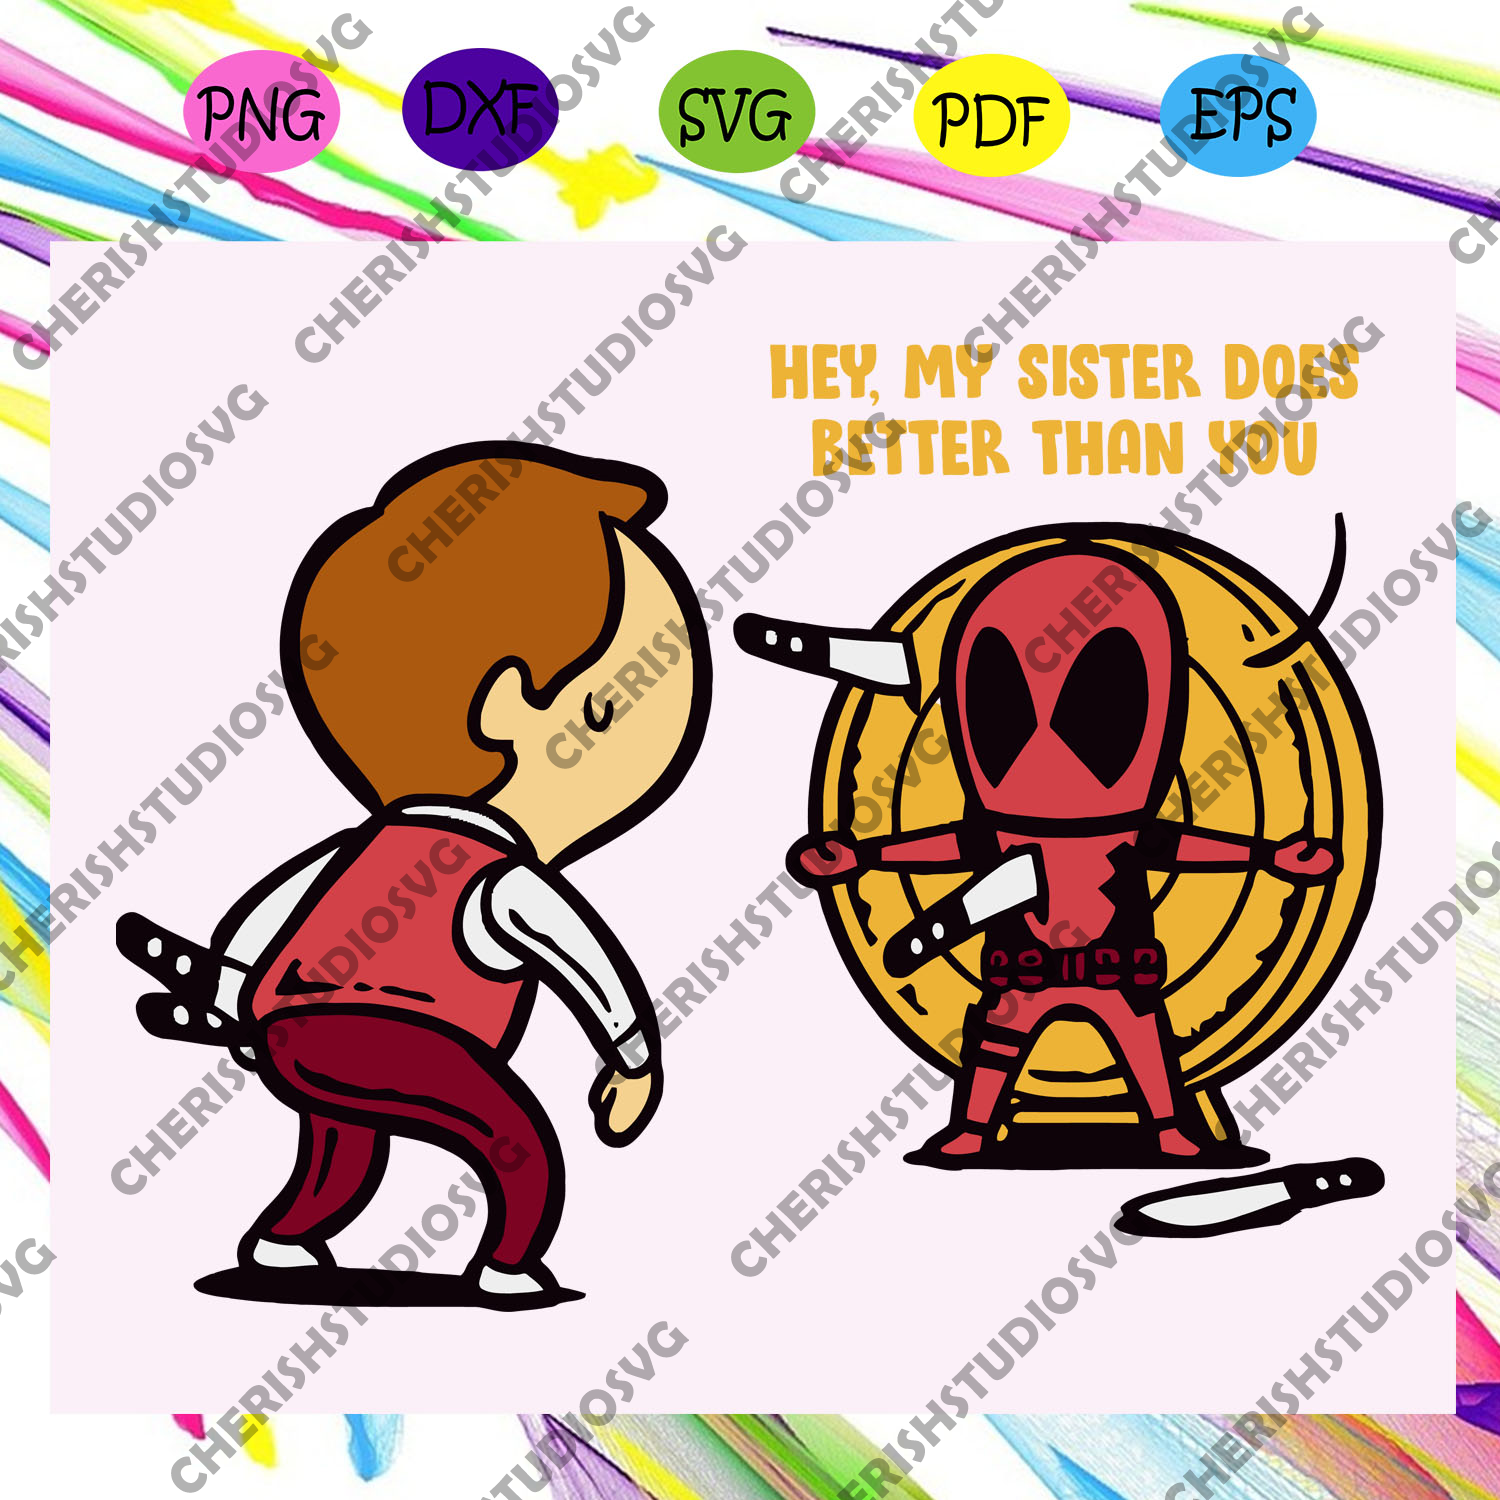 Hey my sister does better than you, sister shirt, sister svg, deadpool svg, funny deadpool clipart, best sister ever, gift for sister, awesome sister, gift from sibling, svg cut files, svg clipart, silhouette svg